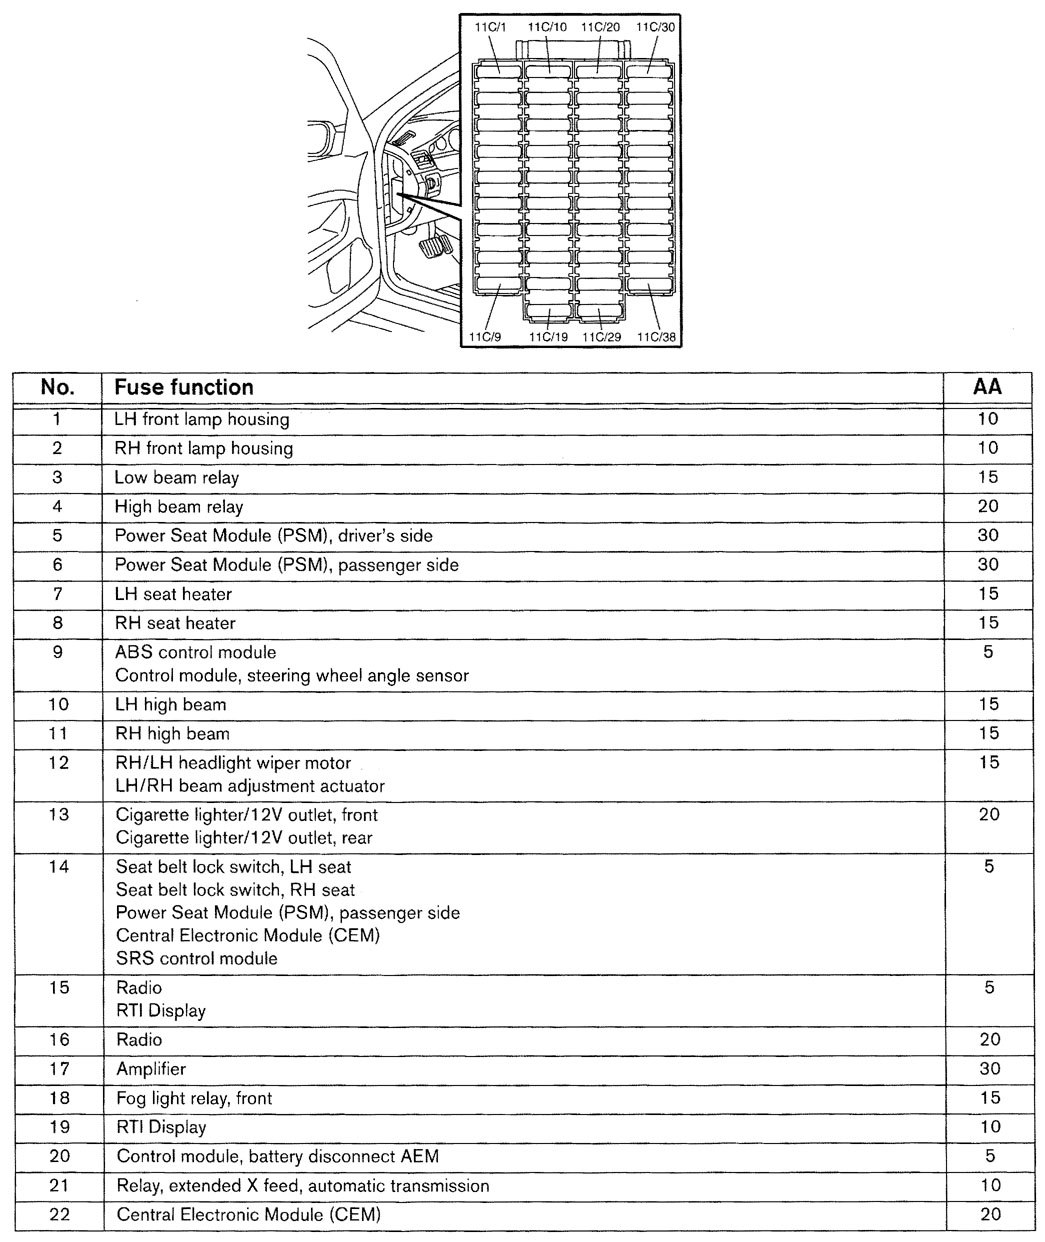 Fuse Box On 2001 Volvo Xc70 Wiring Schematic Diagram 2007 S40 V70 Diagrams Panel Carknowledge